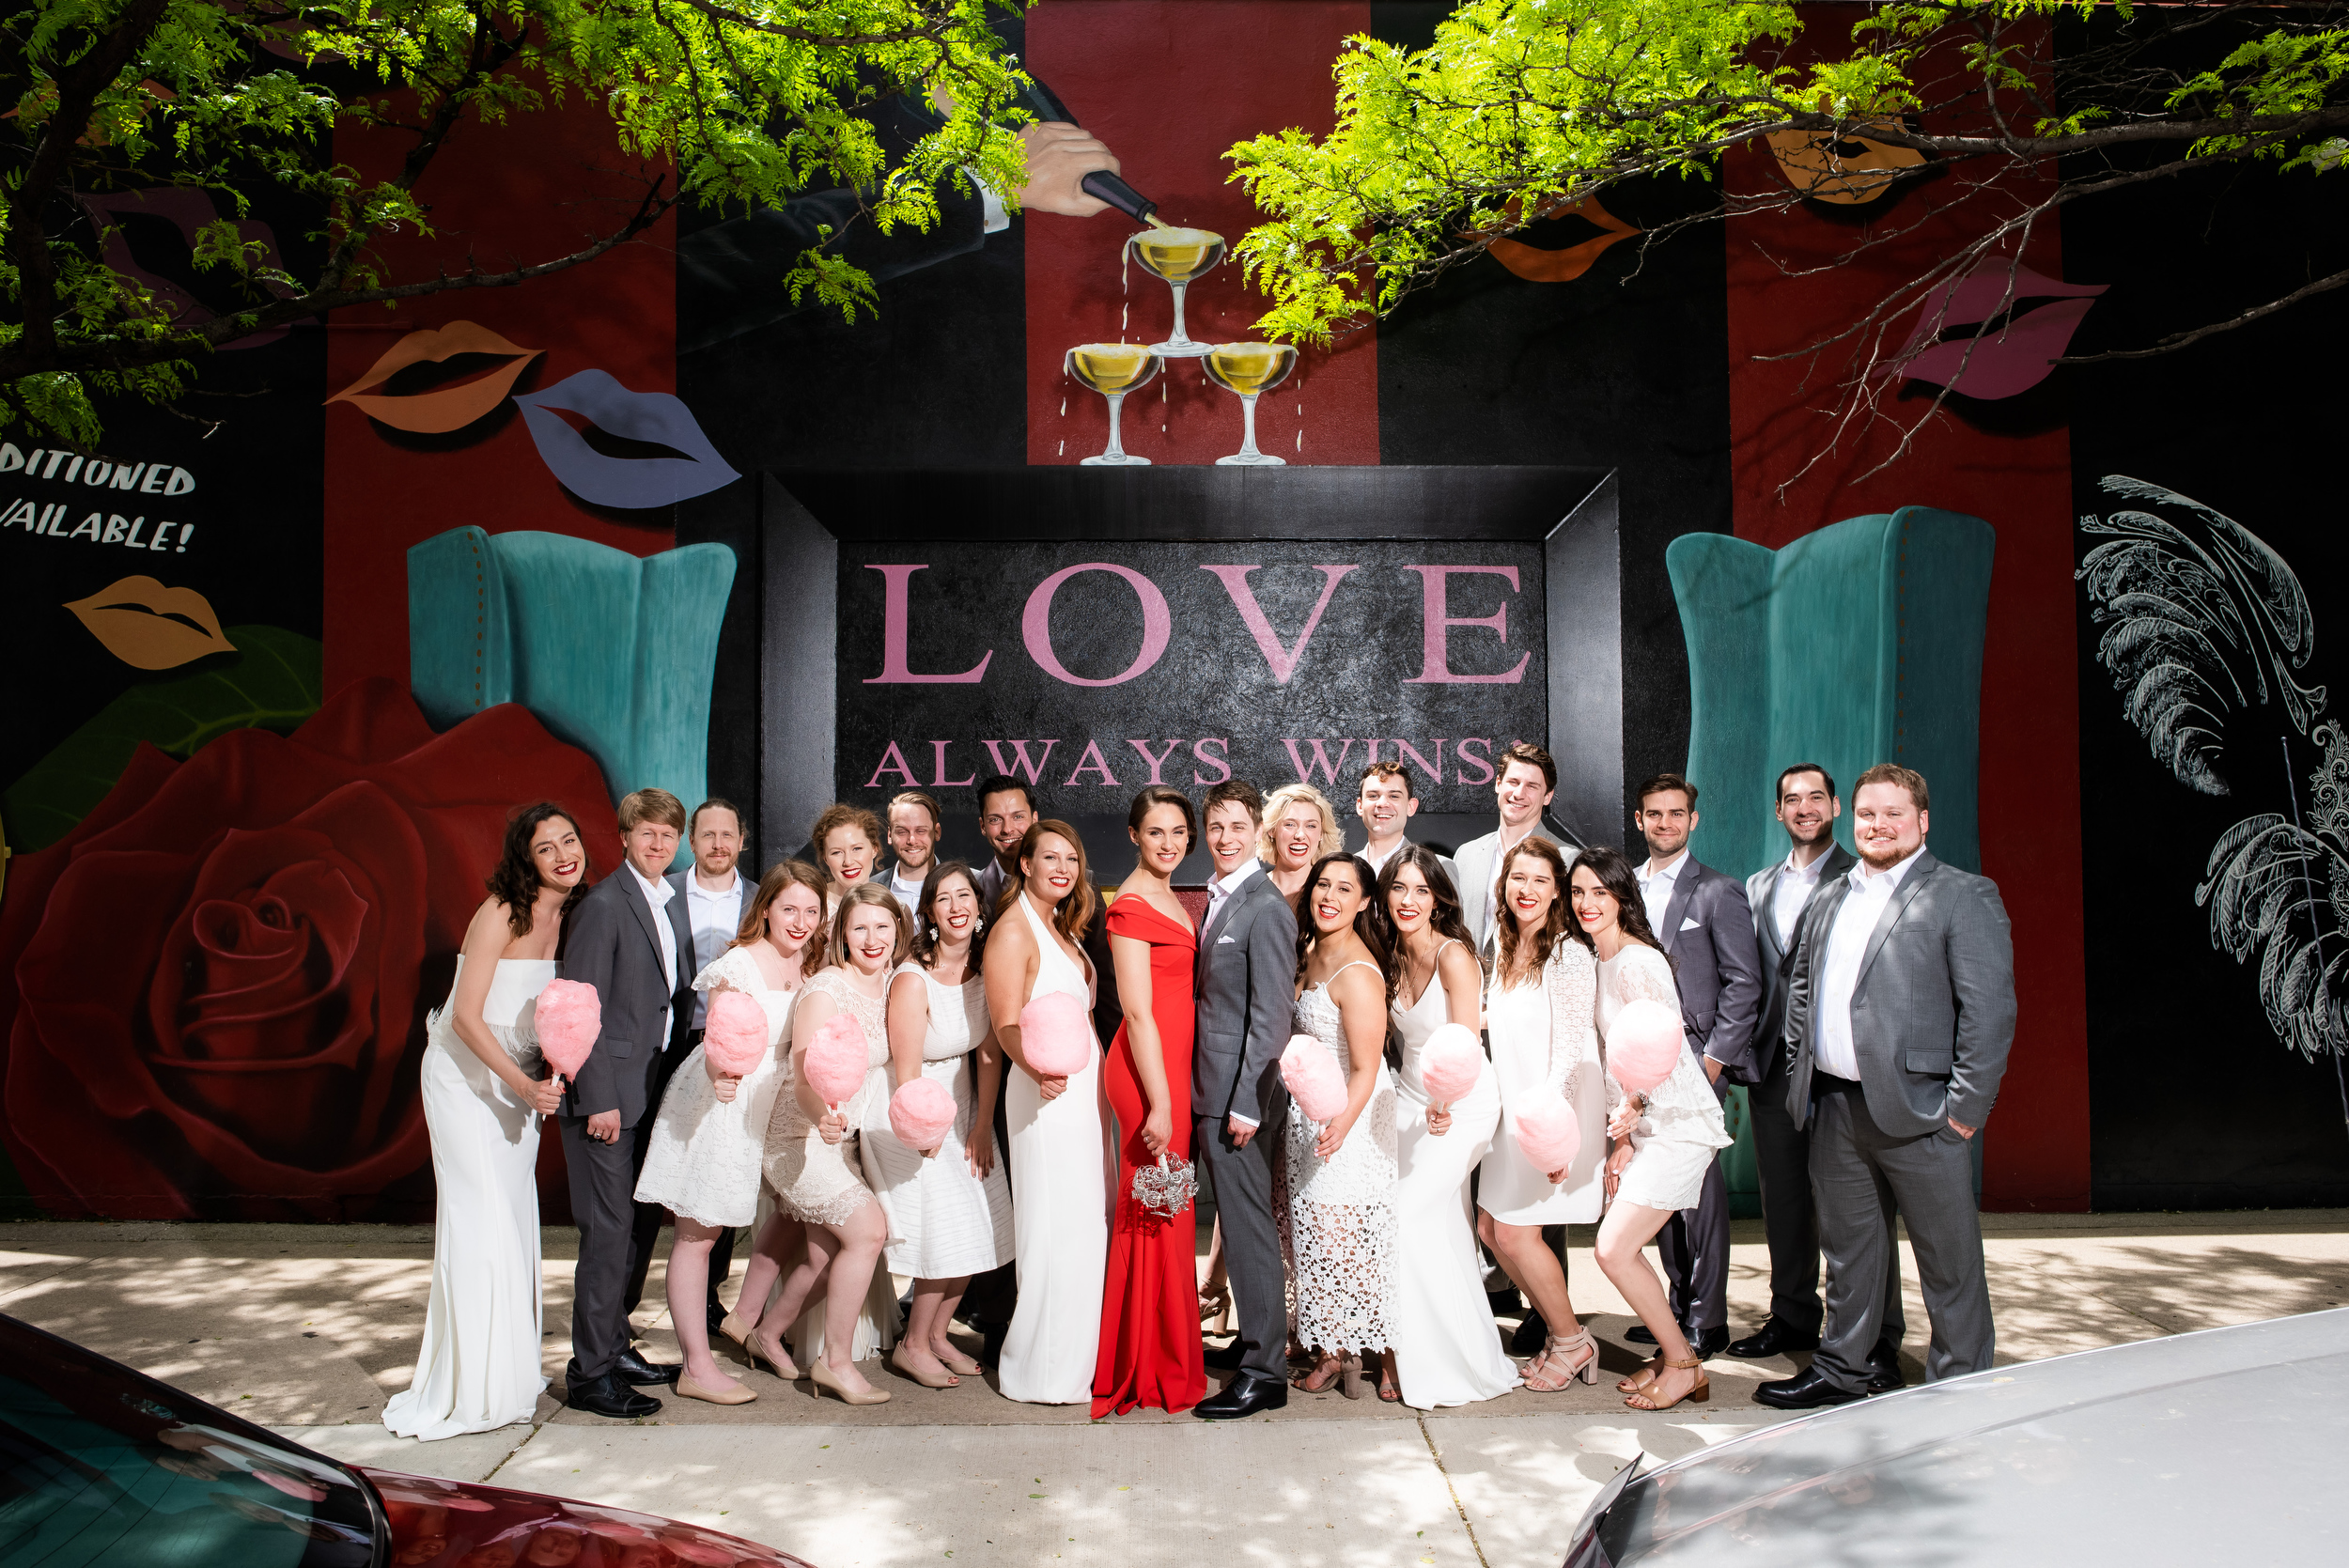 Outdoor wedding photos: Carnivale Chicago wedding captured by J Brown Photography